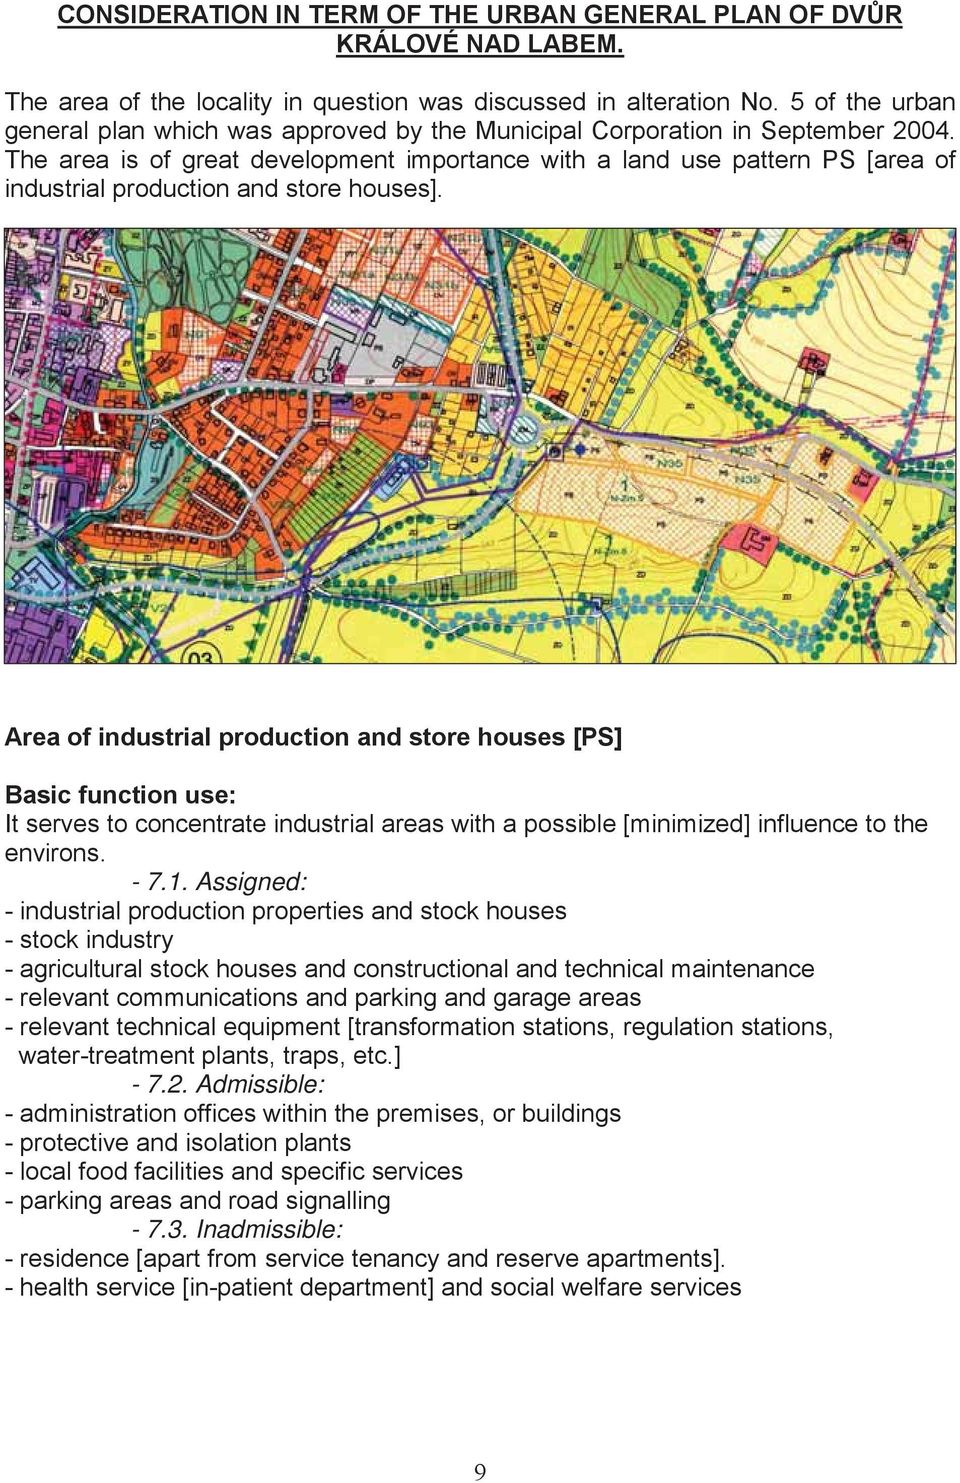 The area is of great development importance with a land use pattern PS [area of industrial production and store houses].